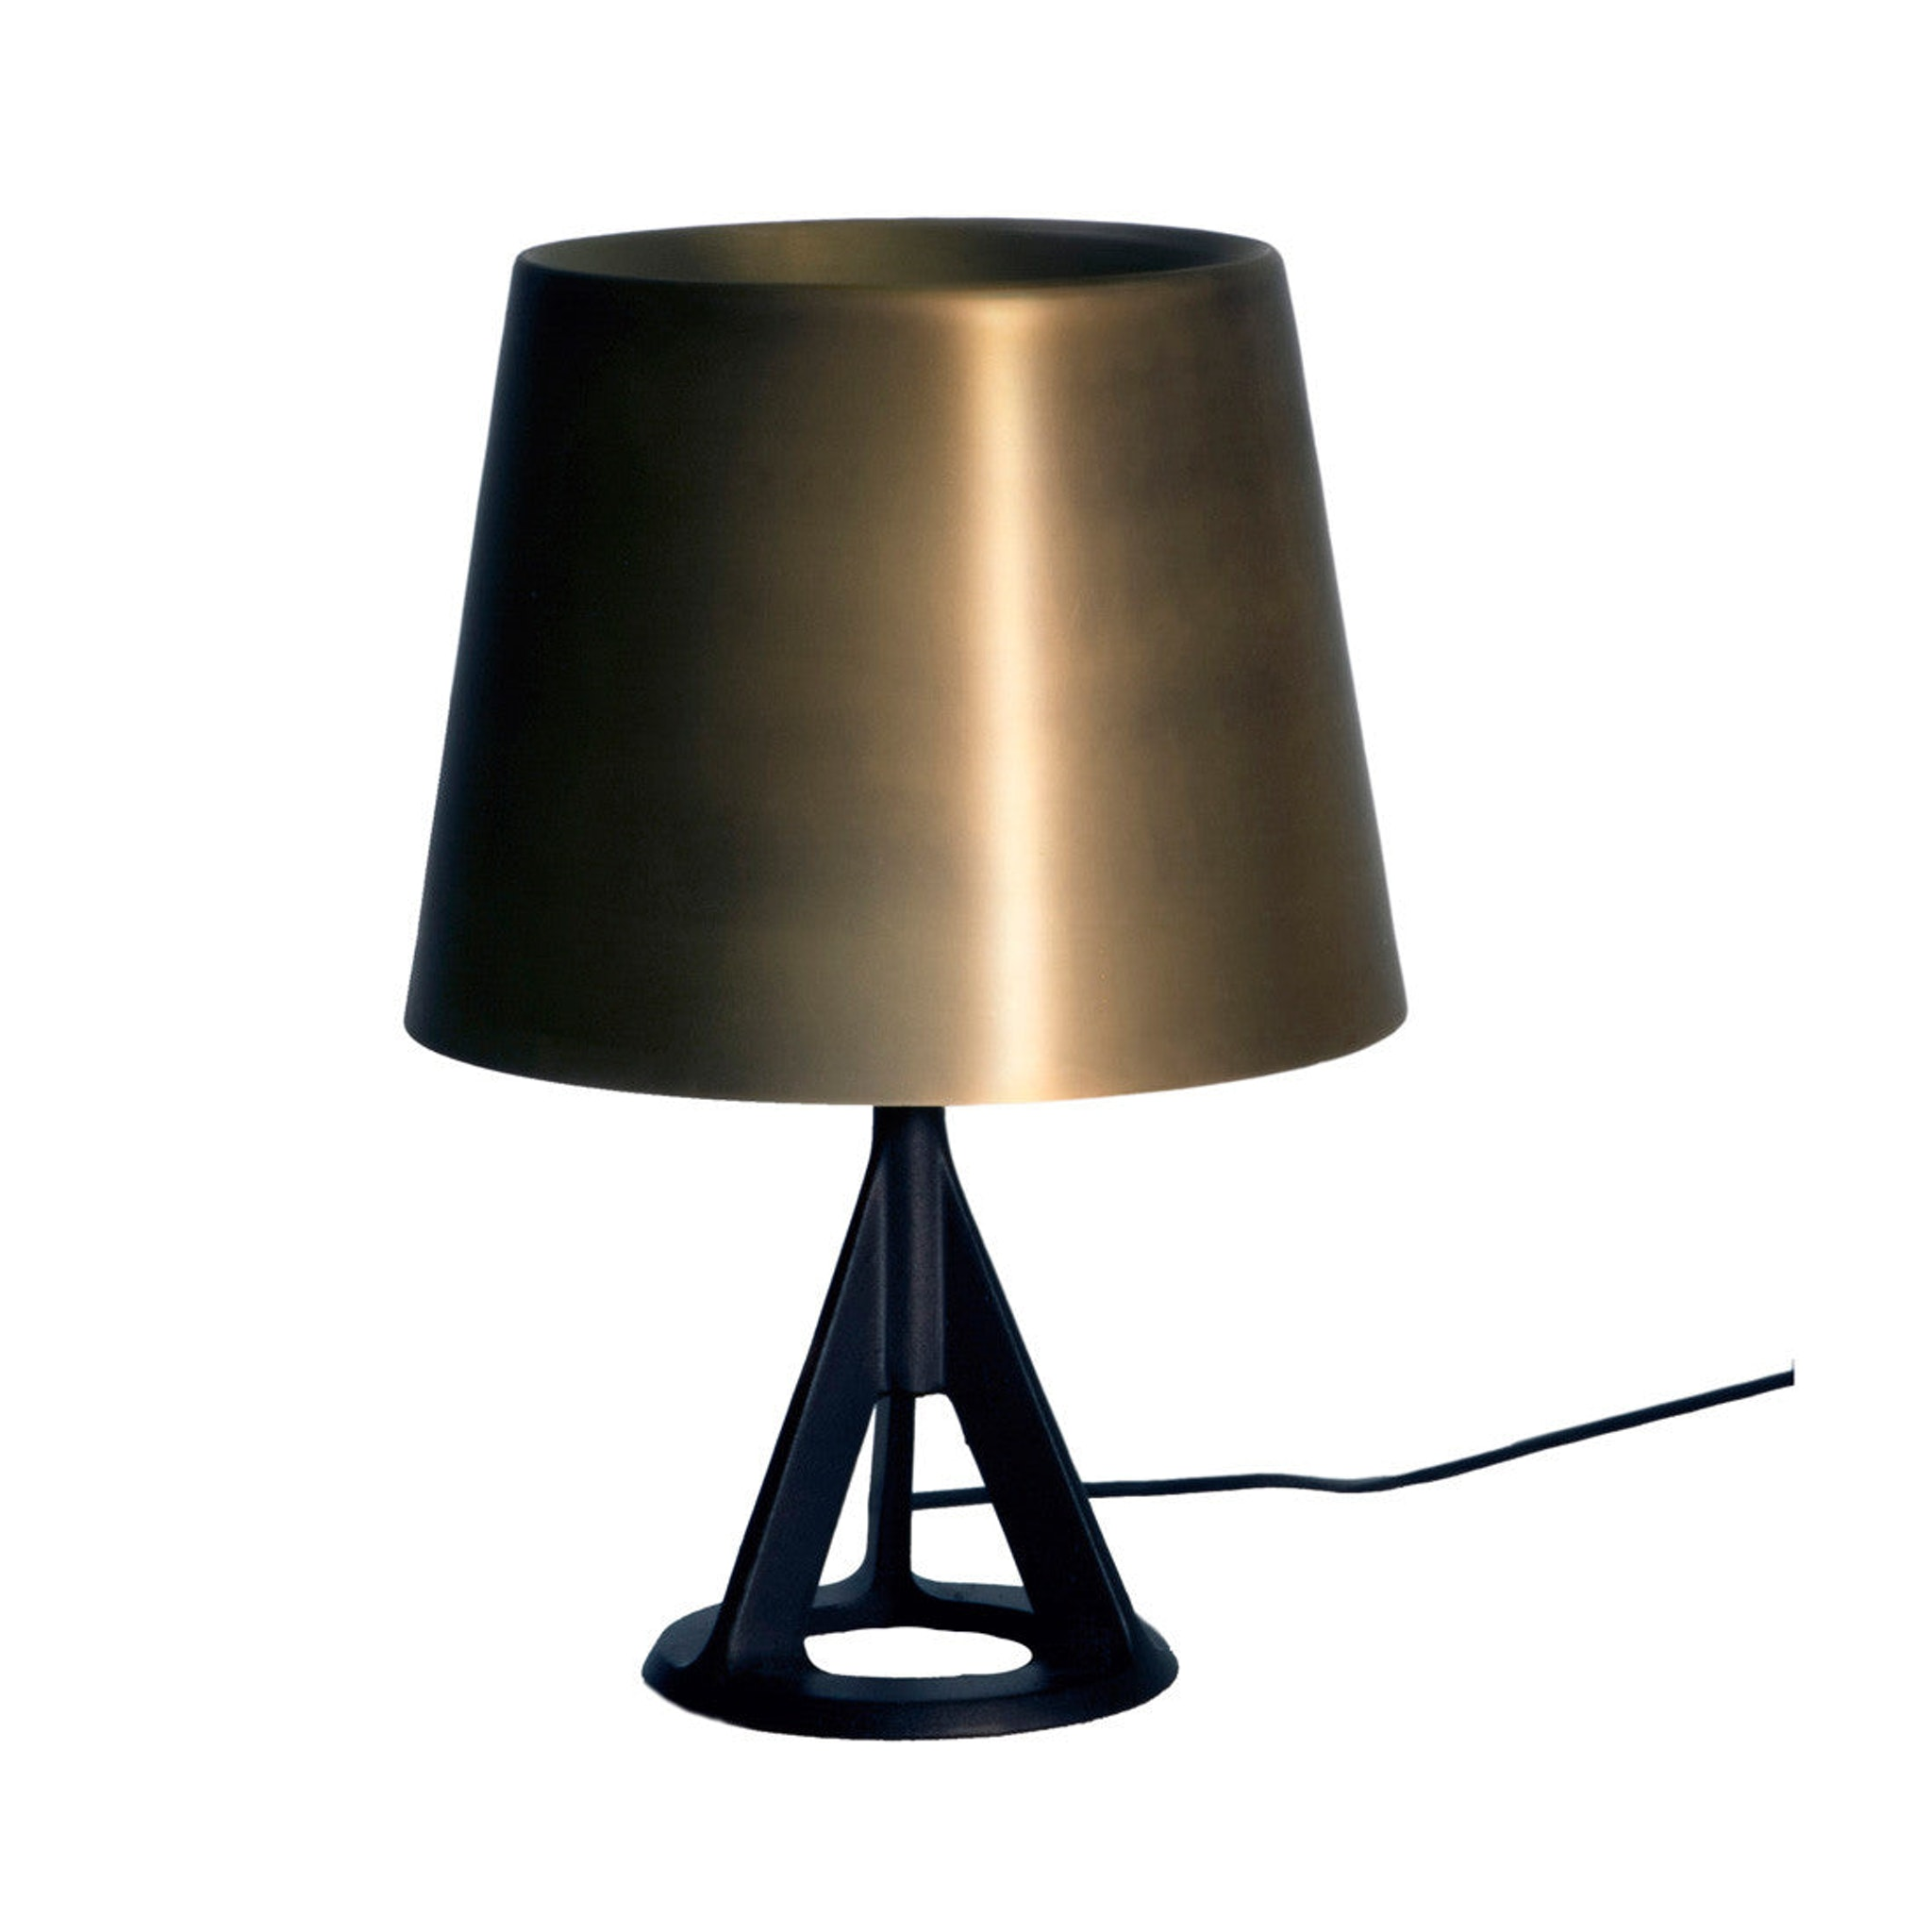 Base Brass Table Light by Tom Dixon